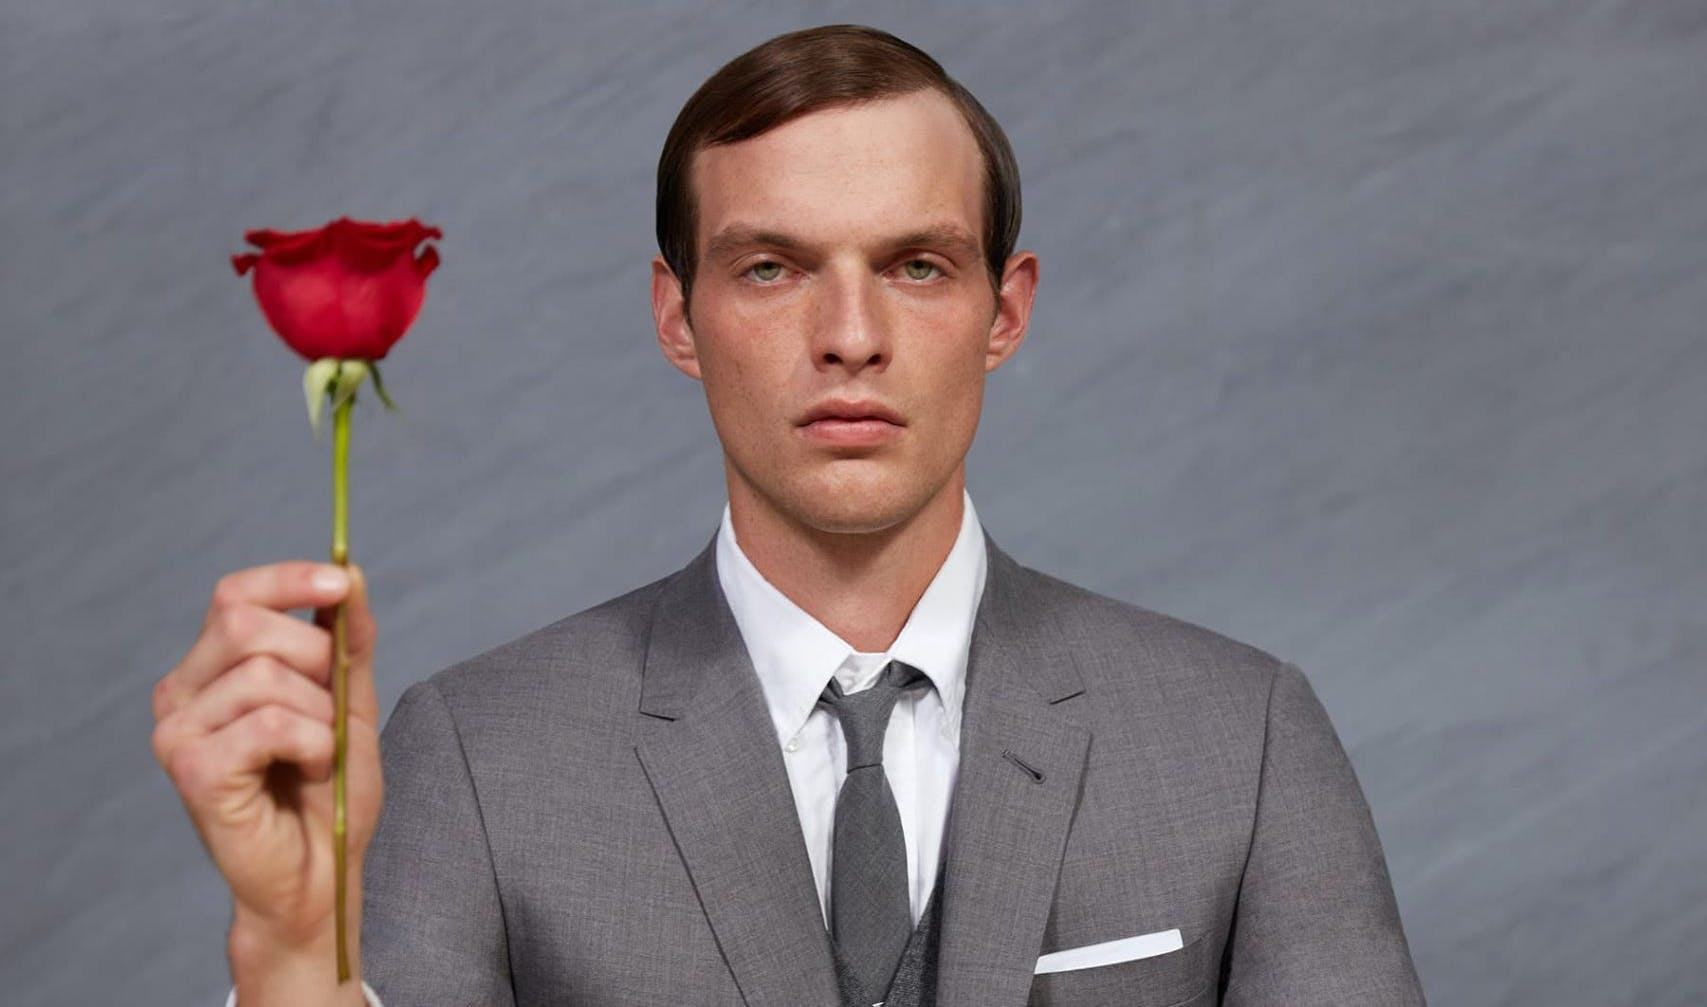 THOM BROWNE FRAGRANCES VALENTINE'S DAY 2021 AD CAMPAIGN